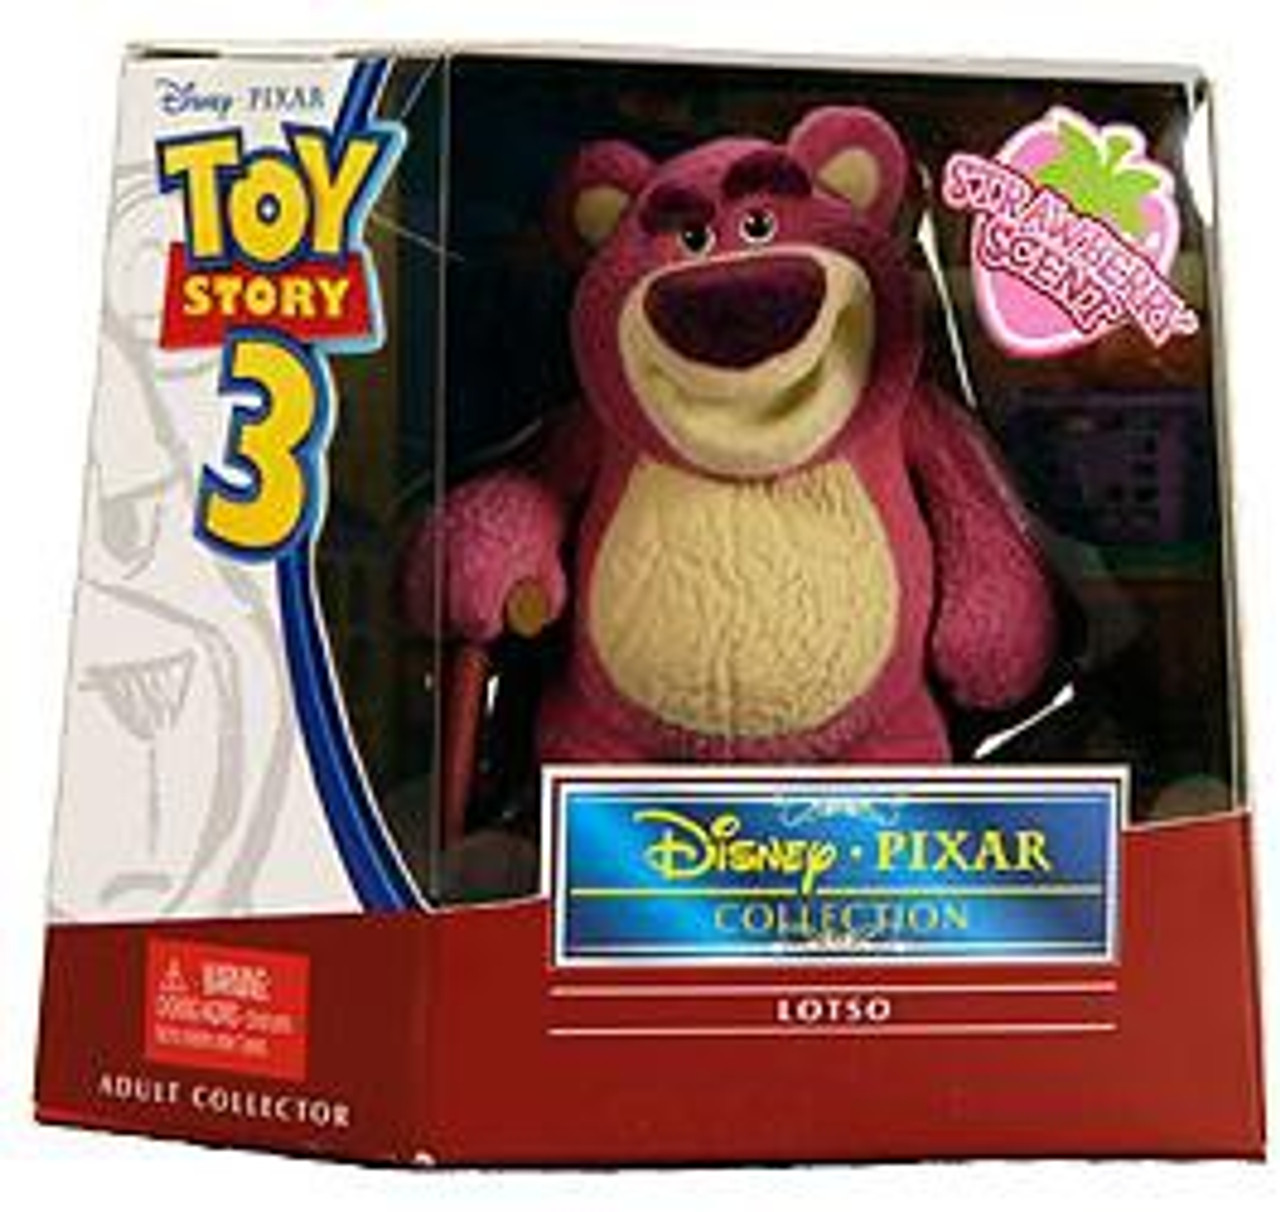 Coloring Bear Lotso from Toy story 3. Toy story 3 Coloring Pages ... | 1212x1280